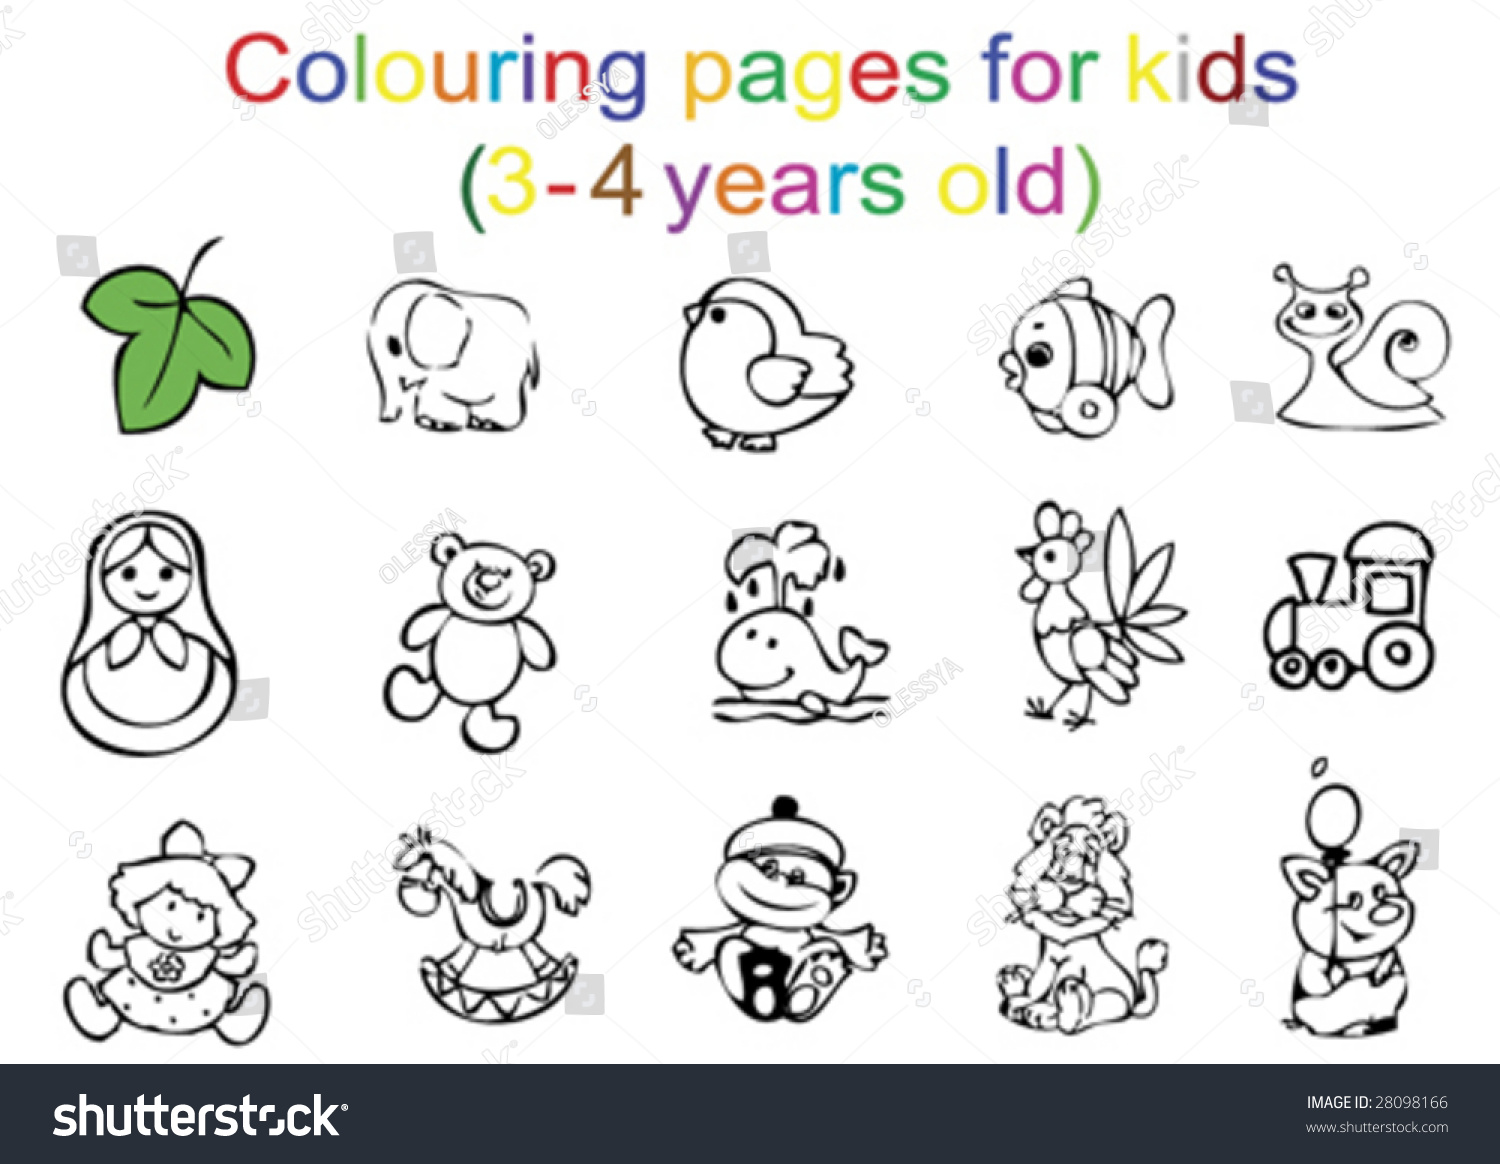 Colouring Pages Kids 34 Years Old Stock Vector 28098166 - Shutterstock